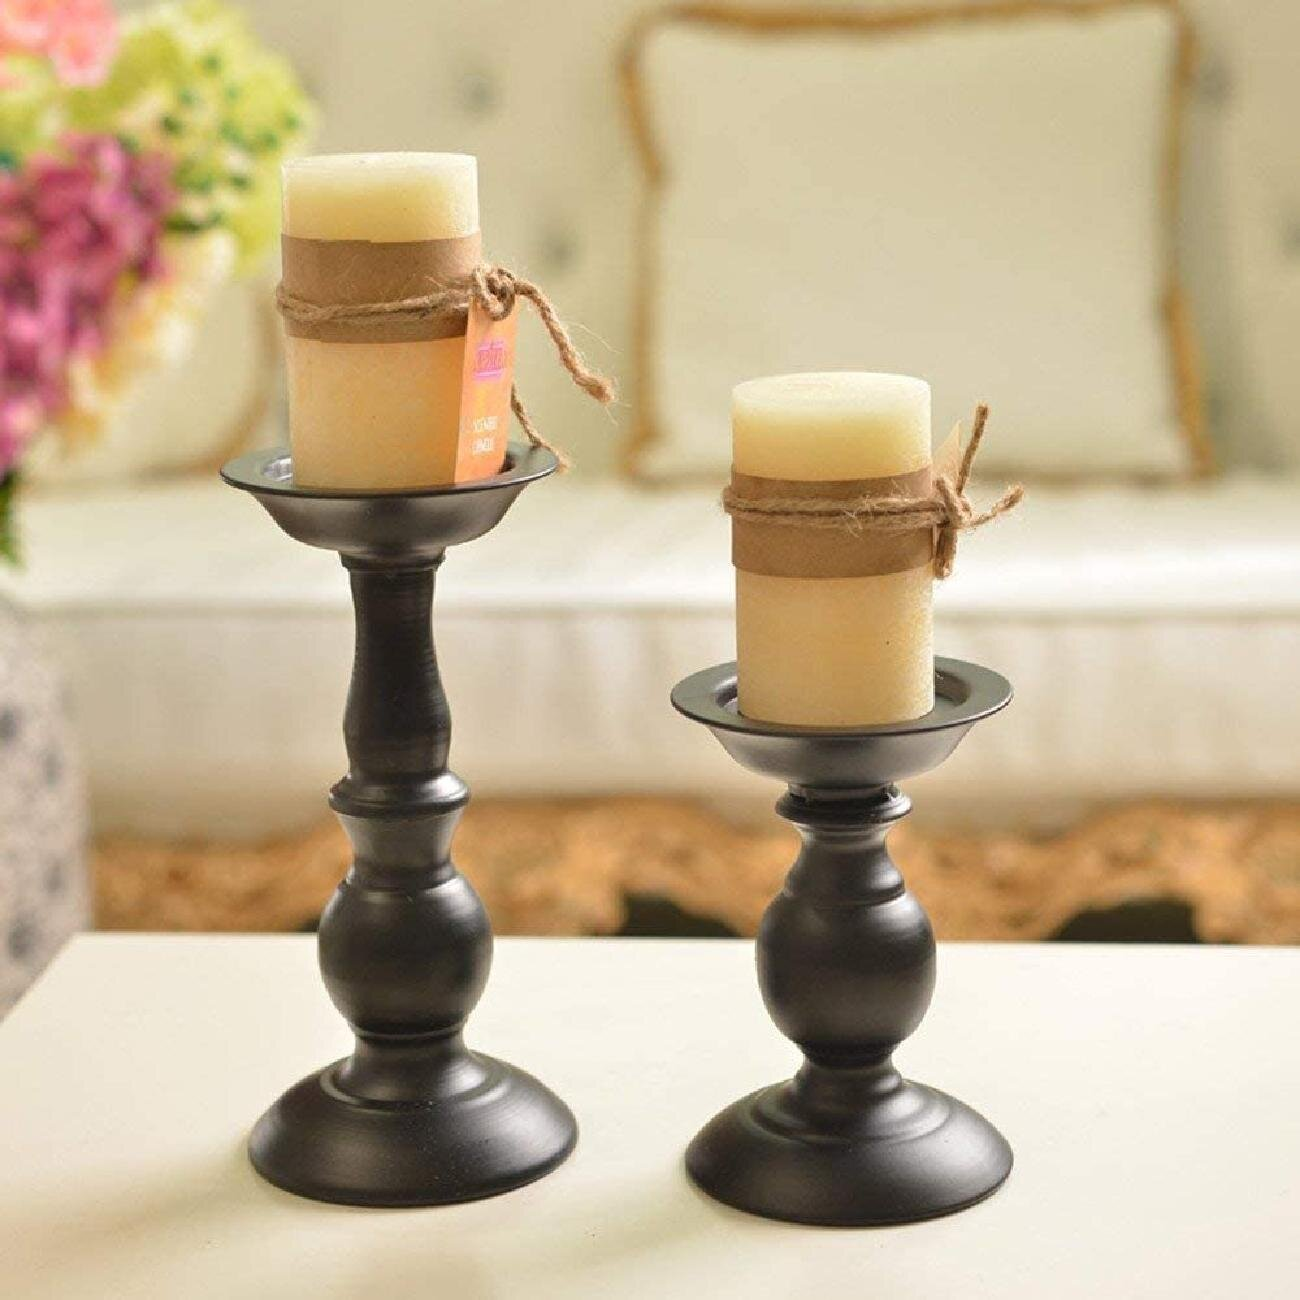 Black 20 Pcs Iron Pillar Candle Holders, Most Ideal For 20 Inches Pillar  Candles Or Flameless Led Candles, Gifts For Wedding, Party, Home, Spa,  Reiki, ...